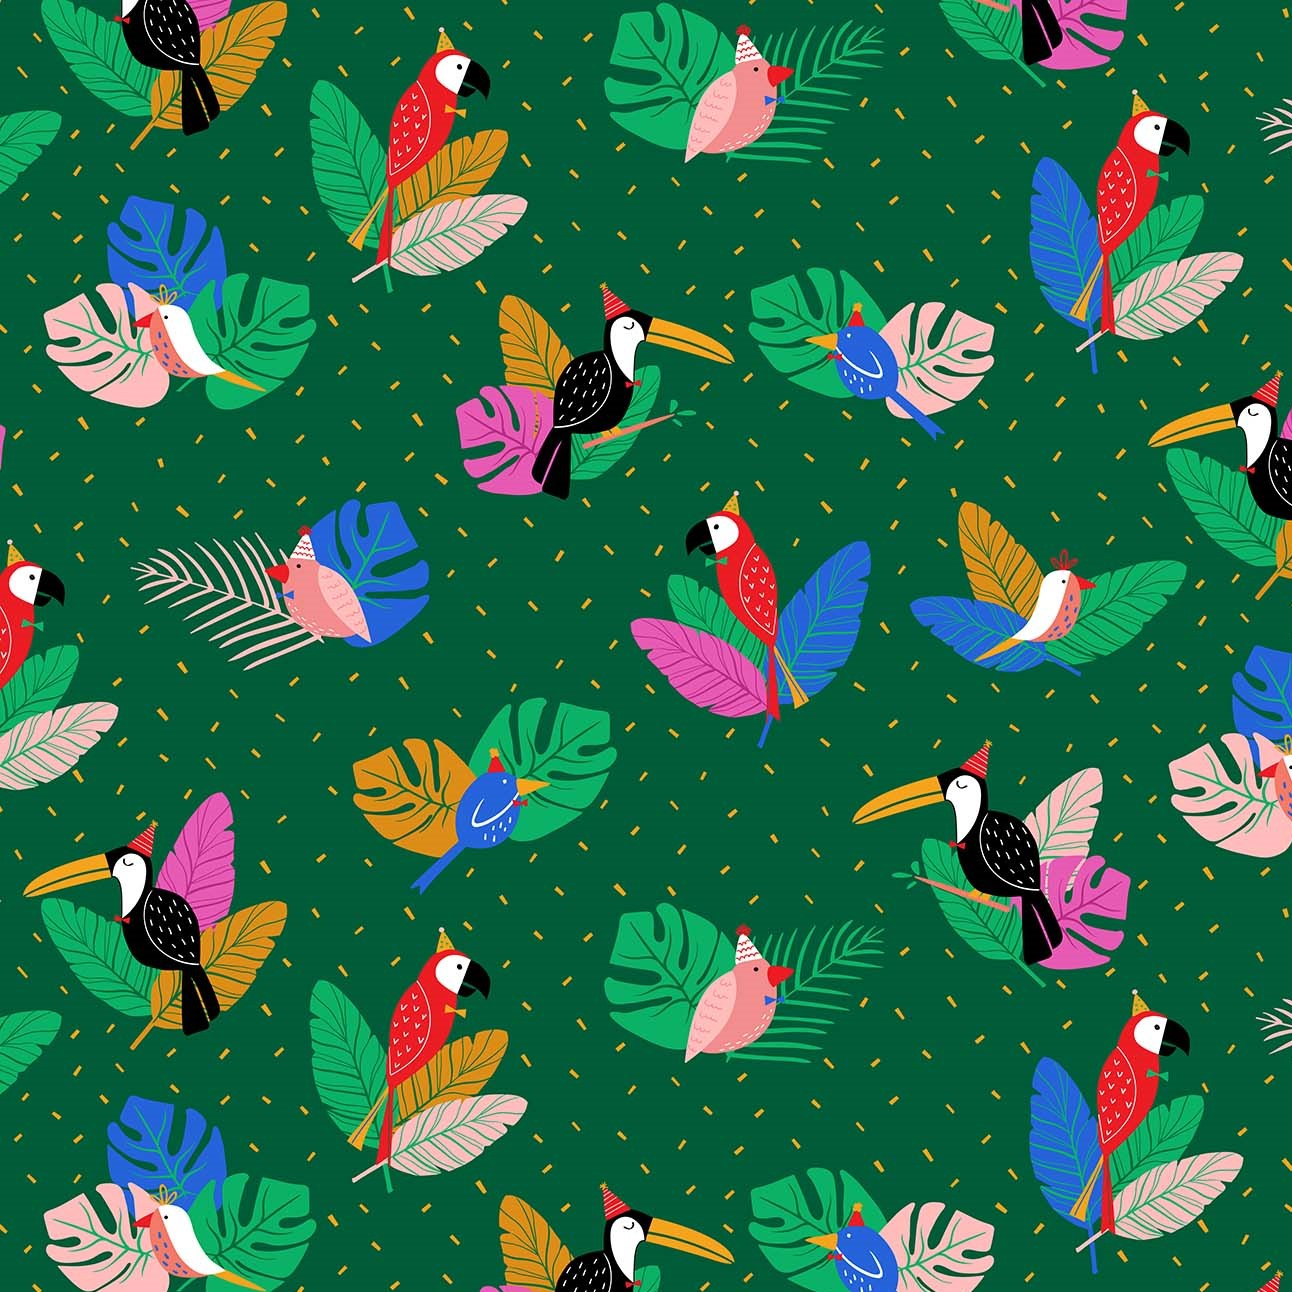 Party Birds Green from the Tropical Jammin' collection by Figo Fabrics, 100% cotton fabric